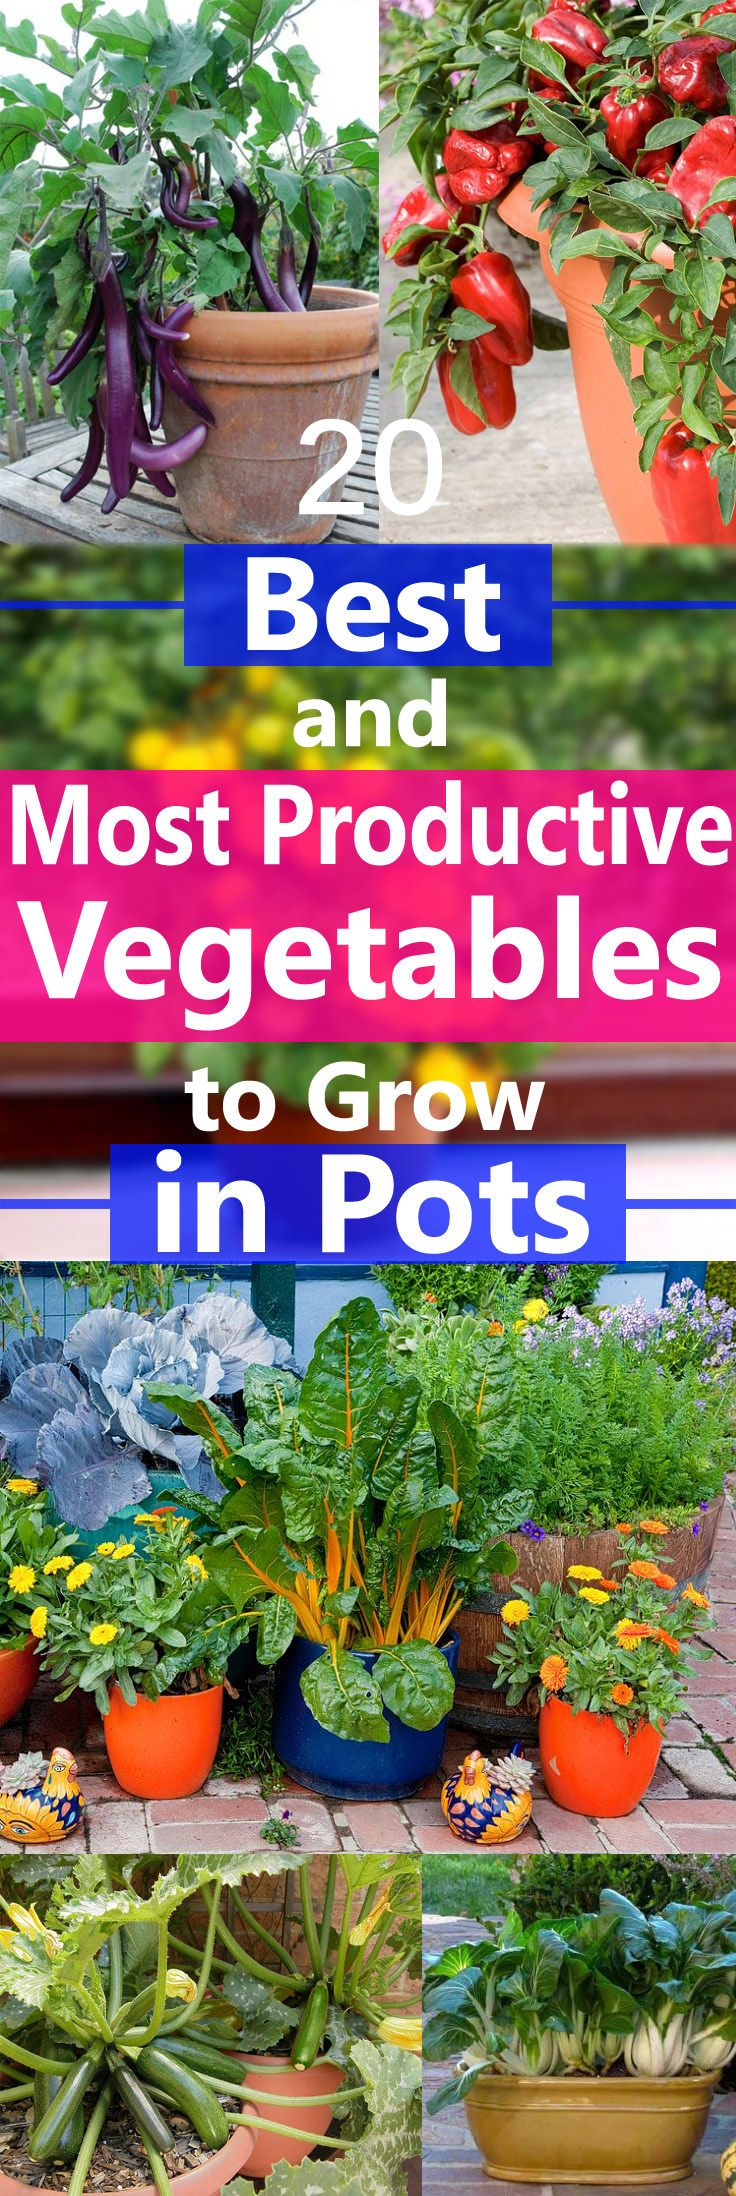 Best & Most Productive Vegetables to Grow in Pots #balconygarden